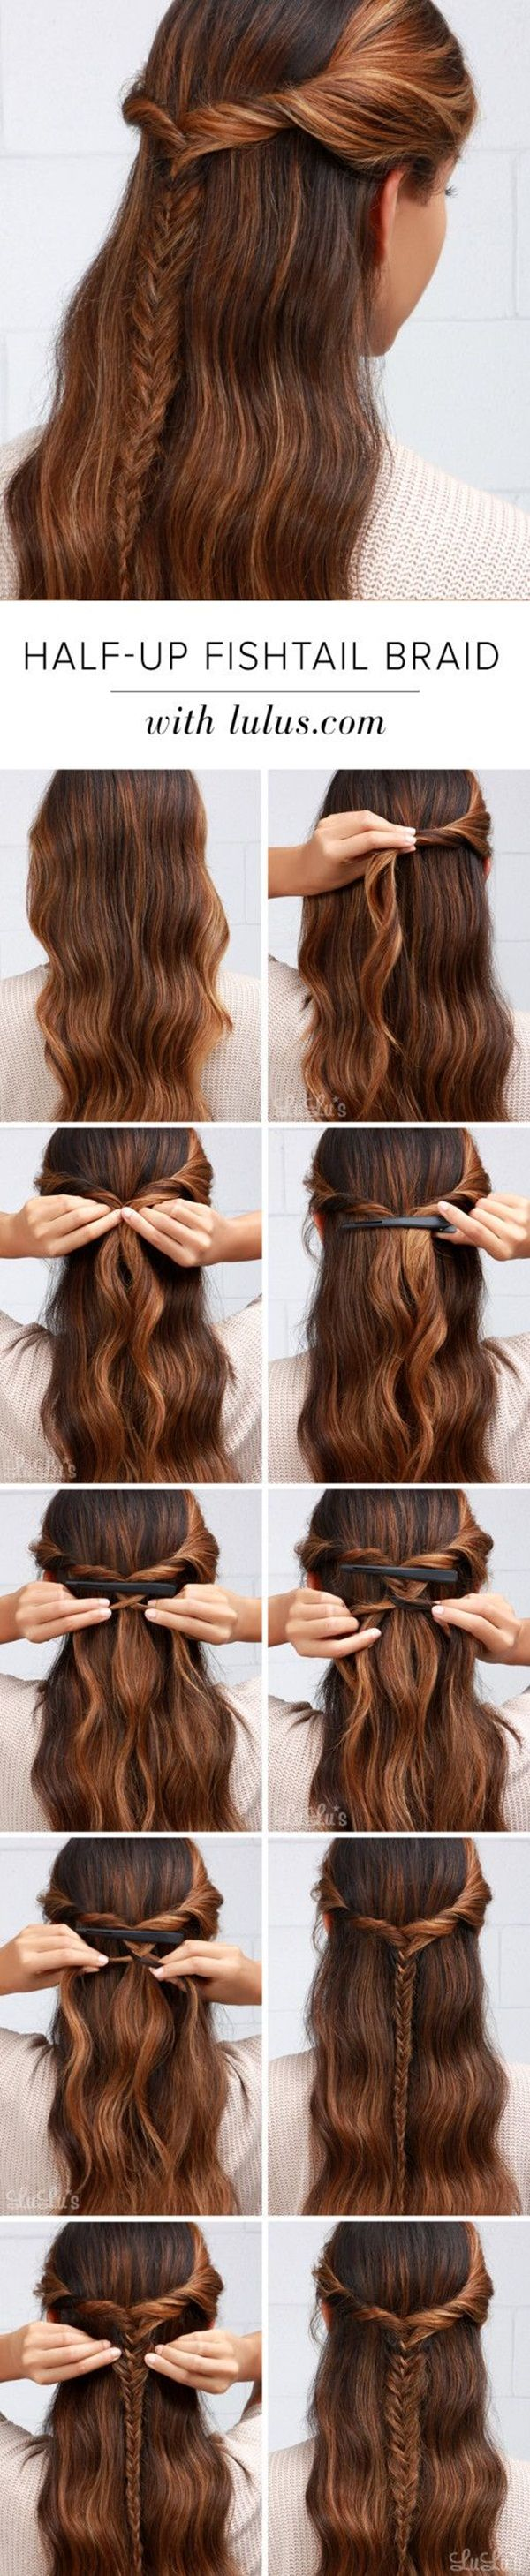 40 Easy Hairstyles for Schools to Try in 2016 | Easy hairstyles ...